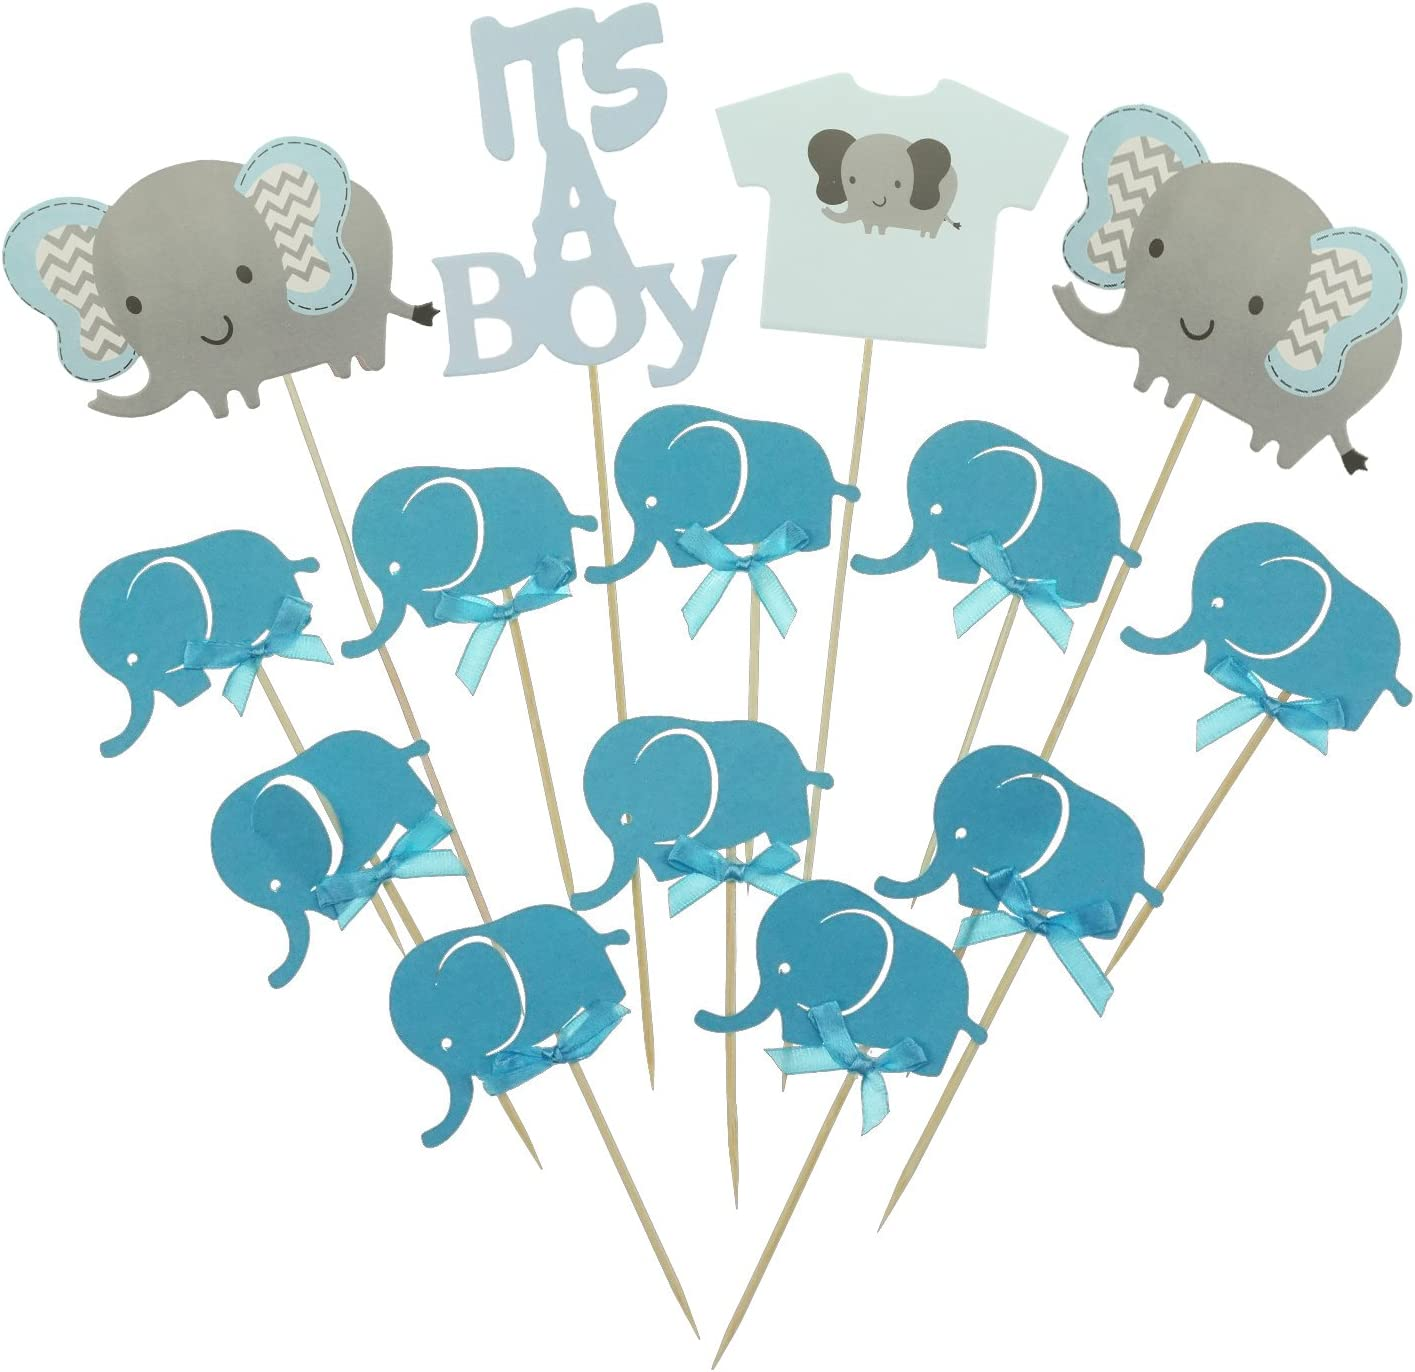 Shxstore Gray and Blue Elephant Cake Cupcake Topper Picks For It's A Boy Baby Shower Birthday Themed Party Decorations Supplies